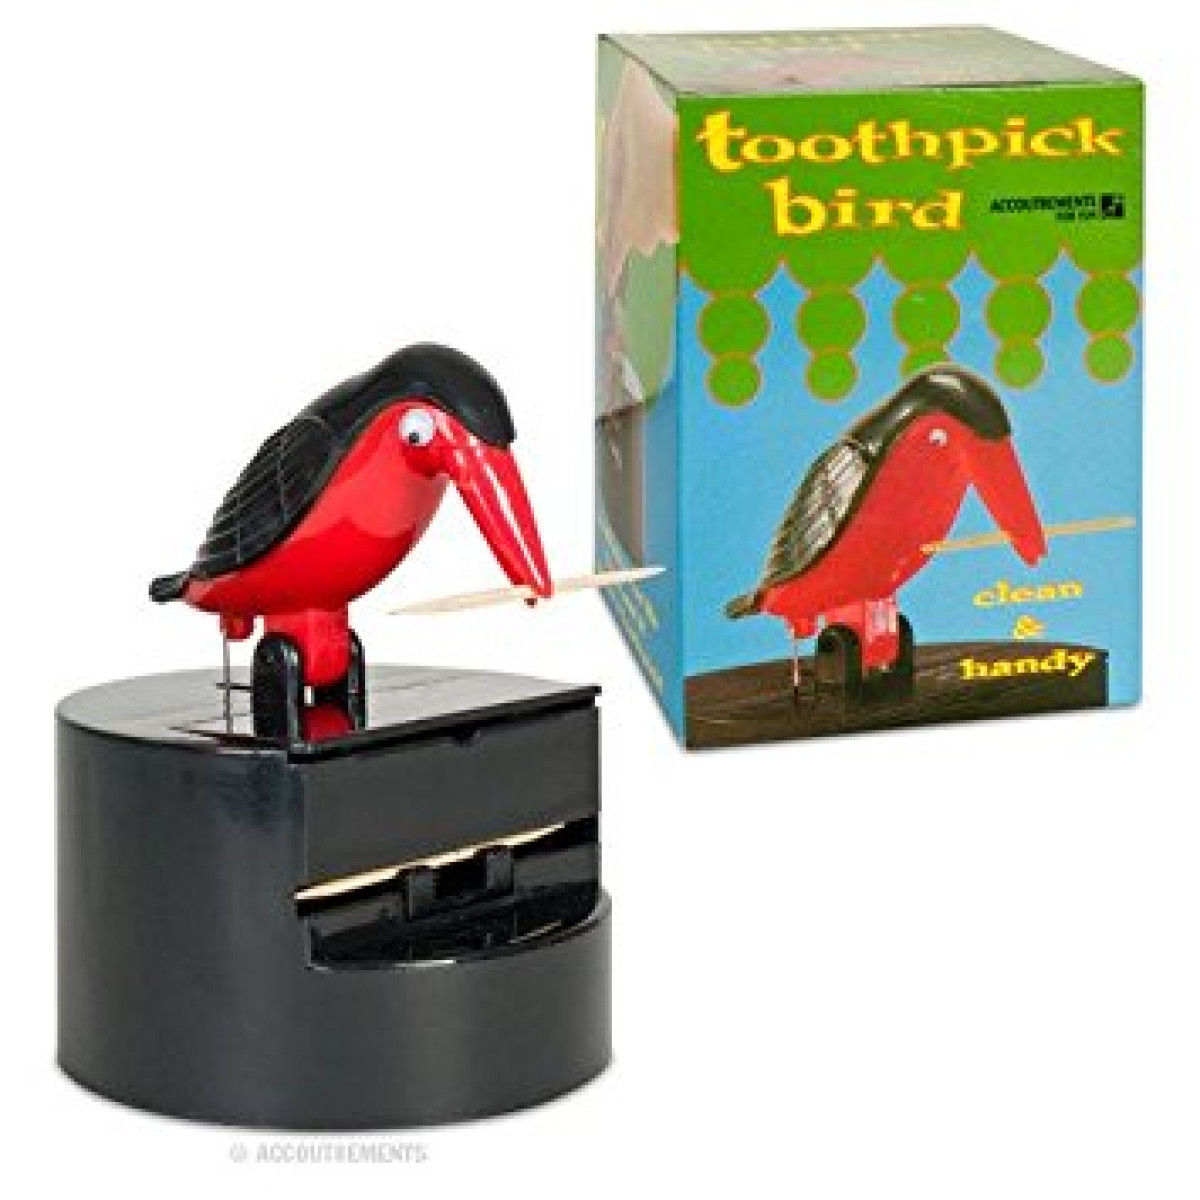 Kitchen & Home Bird Toothpick Dispenser Gag Gift Handy Clean Teeth New Accoutraments New